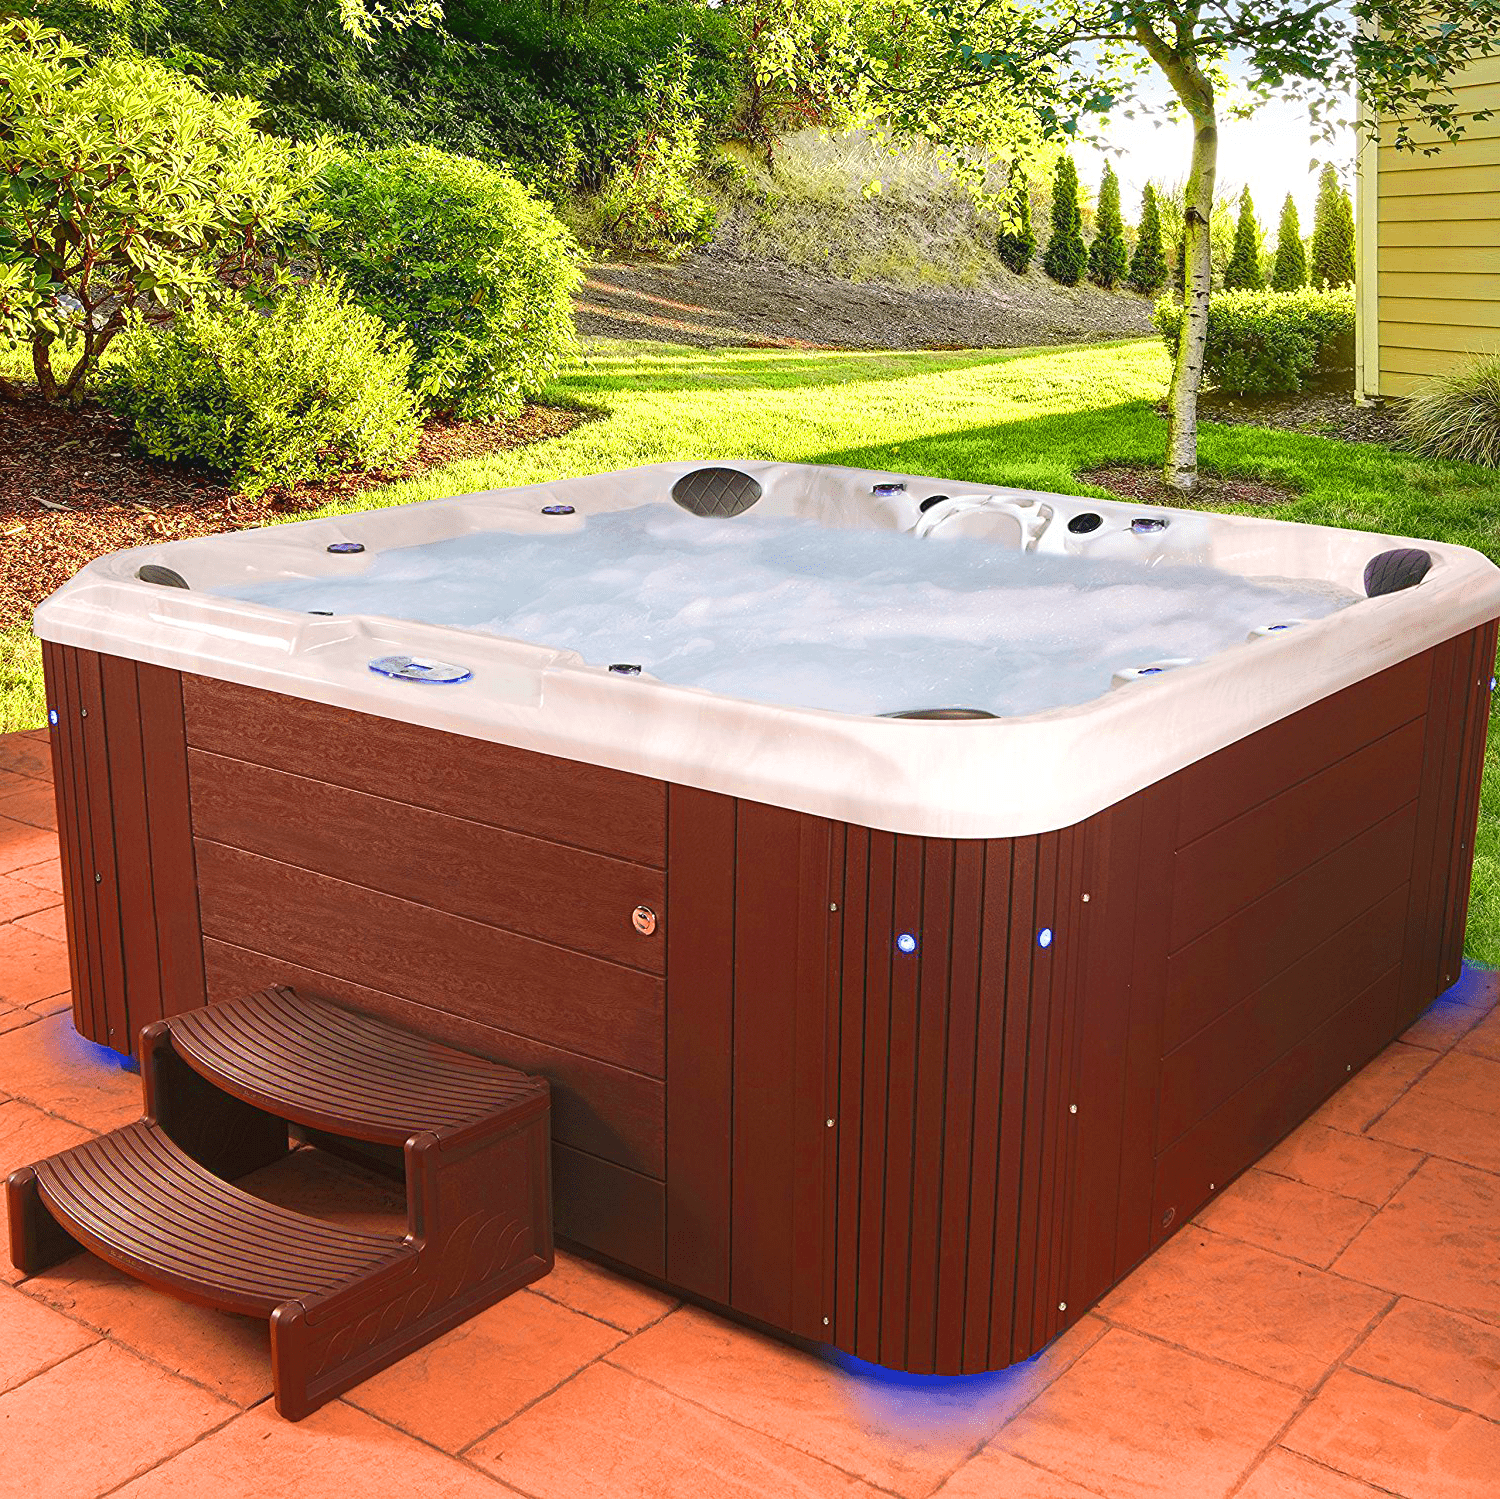 Best Hot Tubs 2019 (Top 10 Jacuzzis Brands Reviewed)